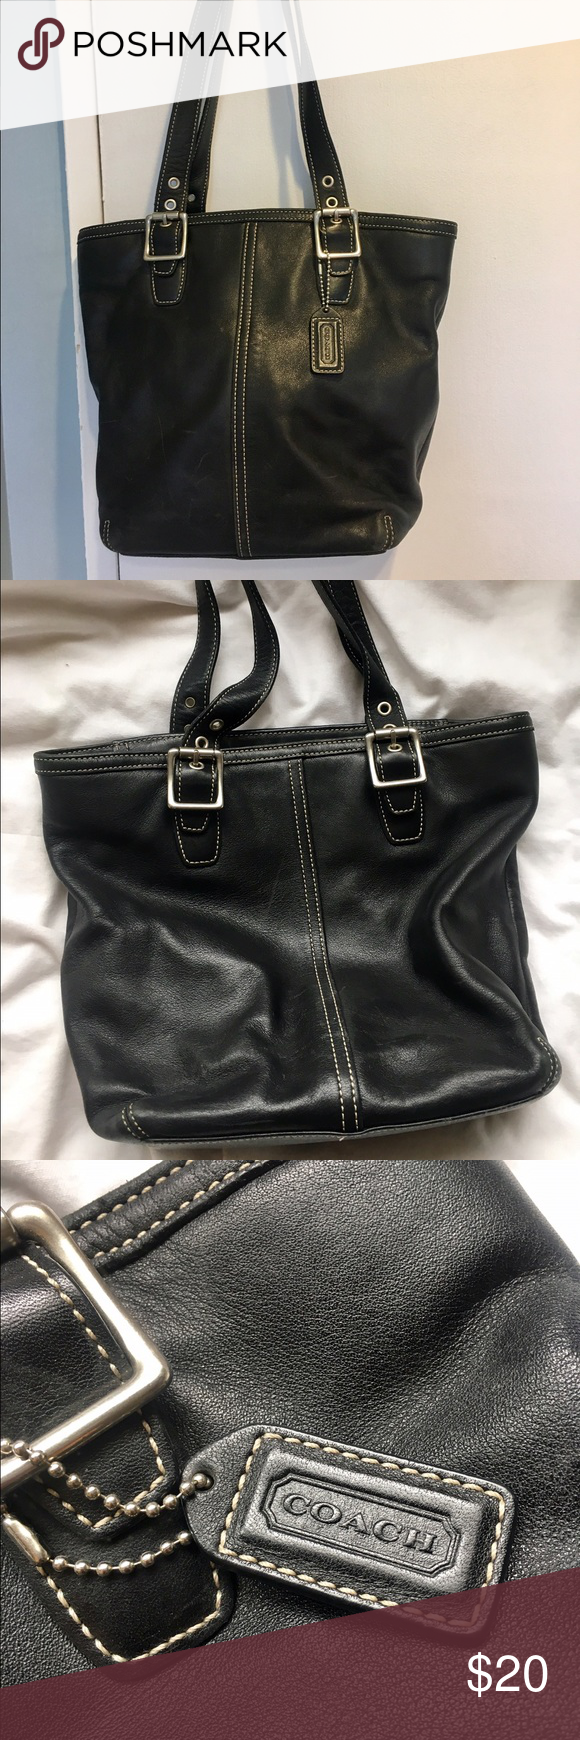 COACH Black Leather Bag Classic Coach black leather bag. Slight scratches  from use. But a935068ed187b